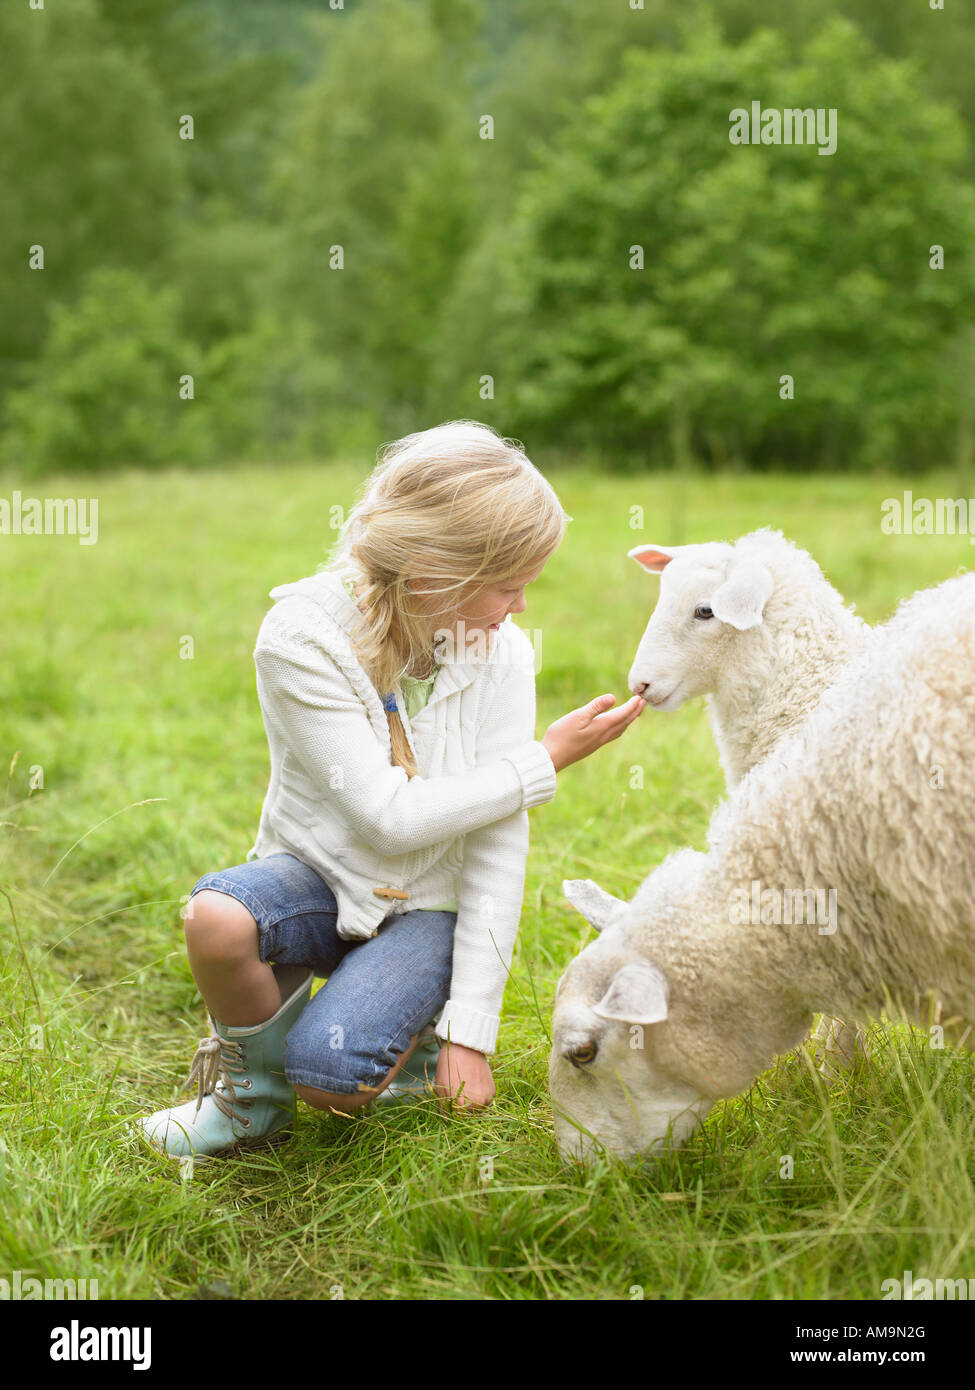 Young girl smiling and crouching by lamb in a field. Stock Photo